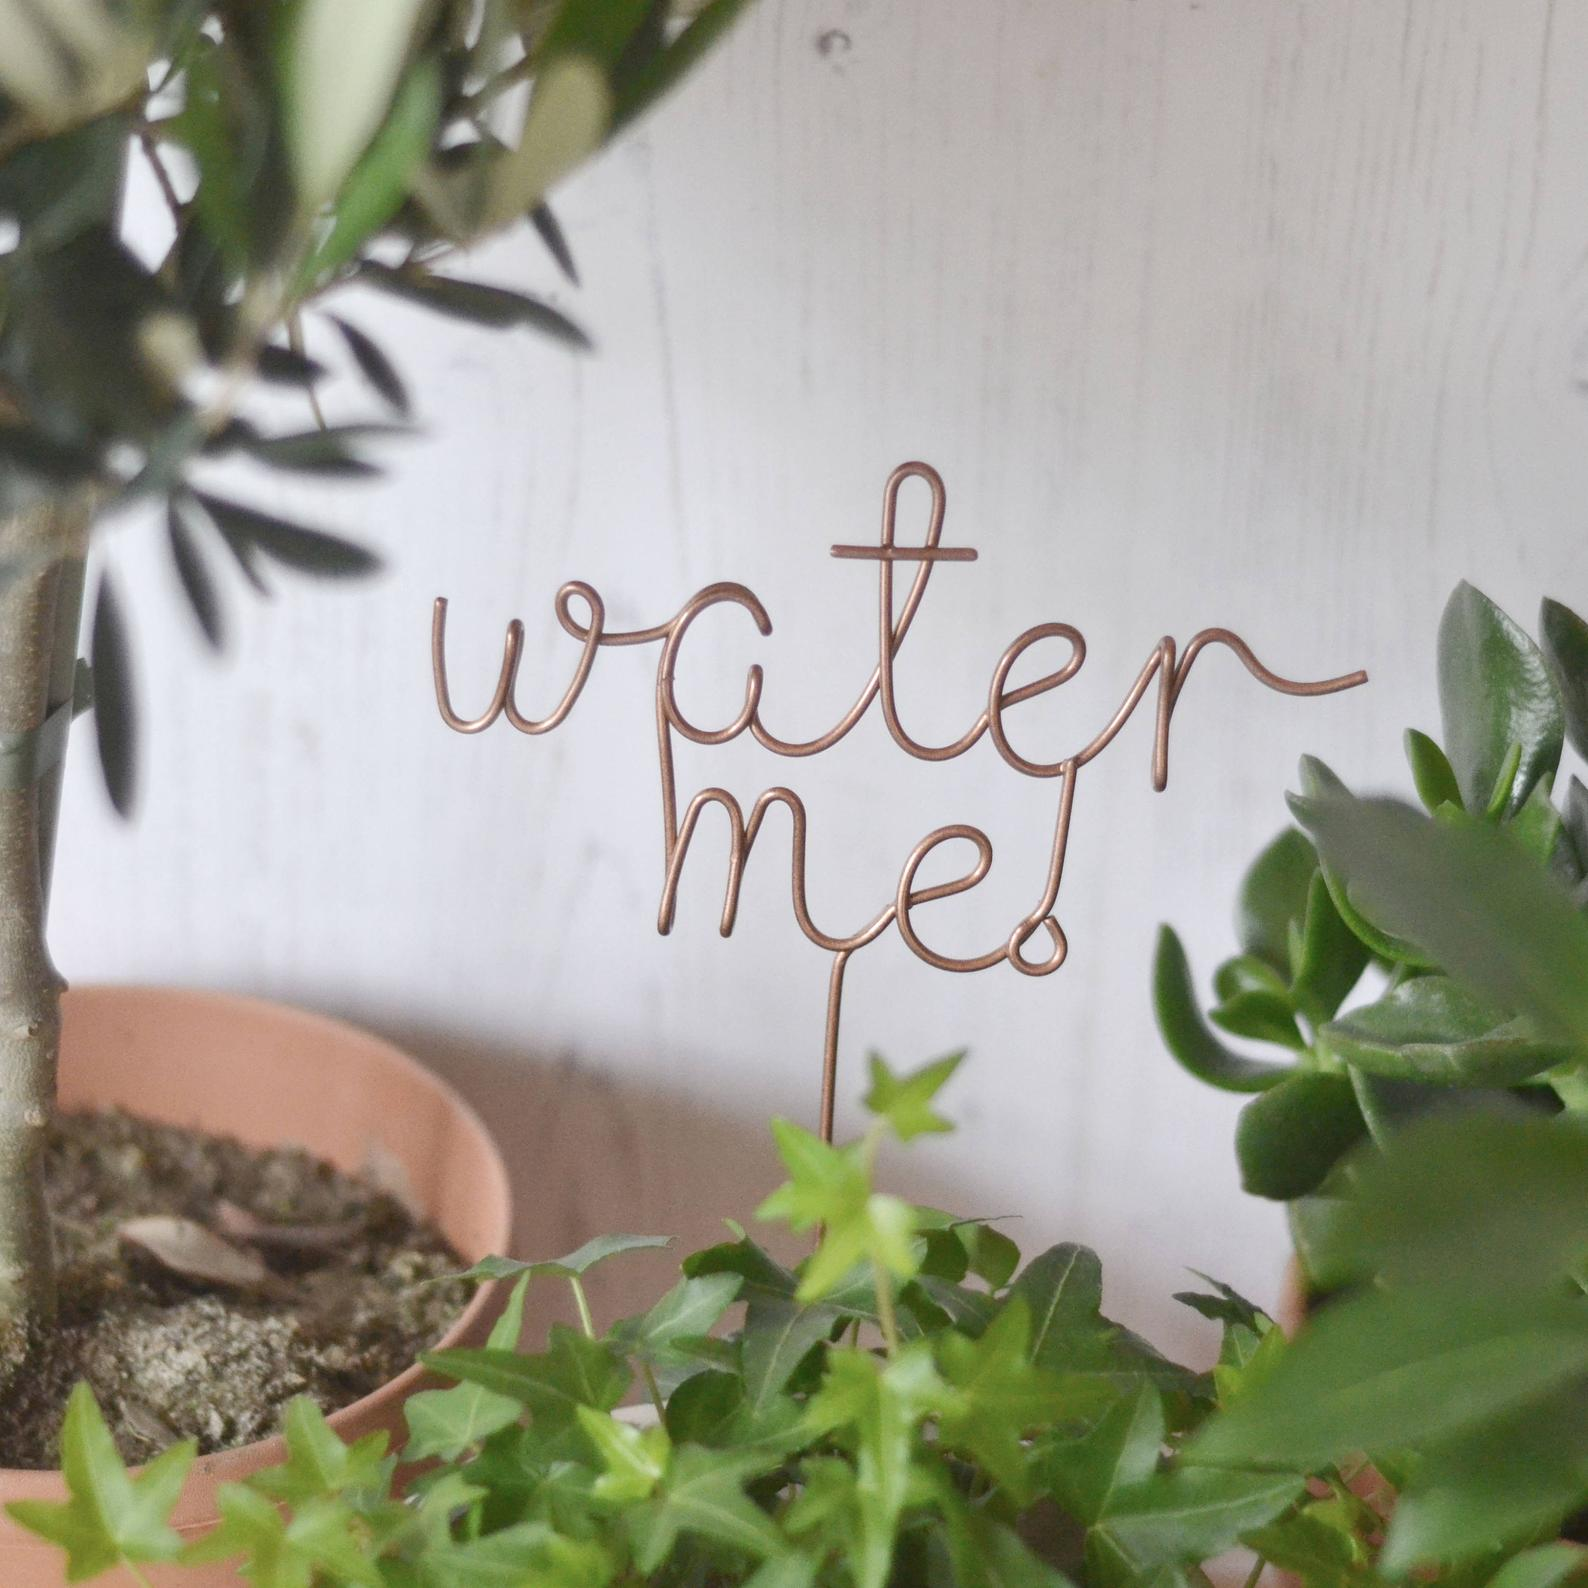 Water me Plant Marker via etsy